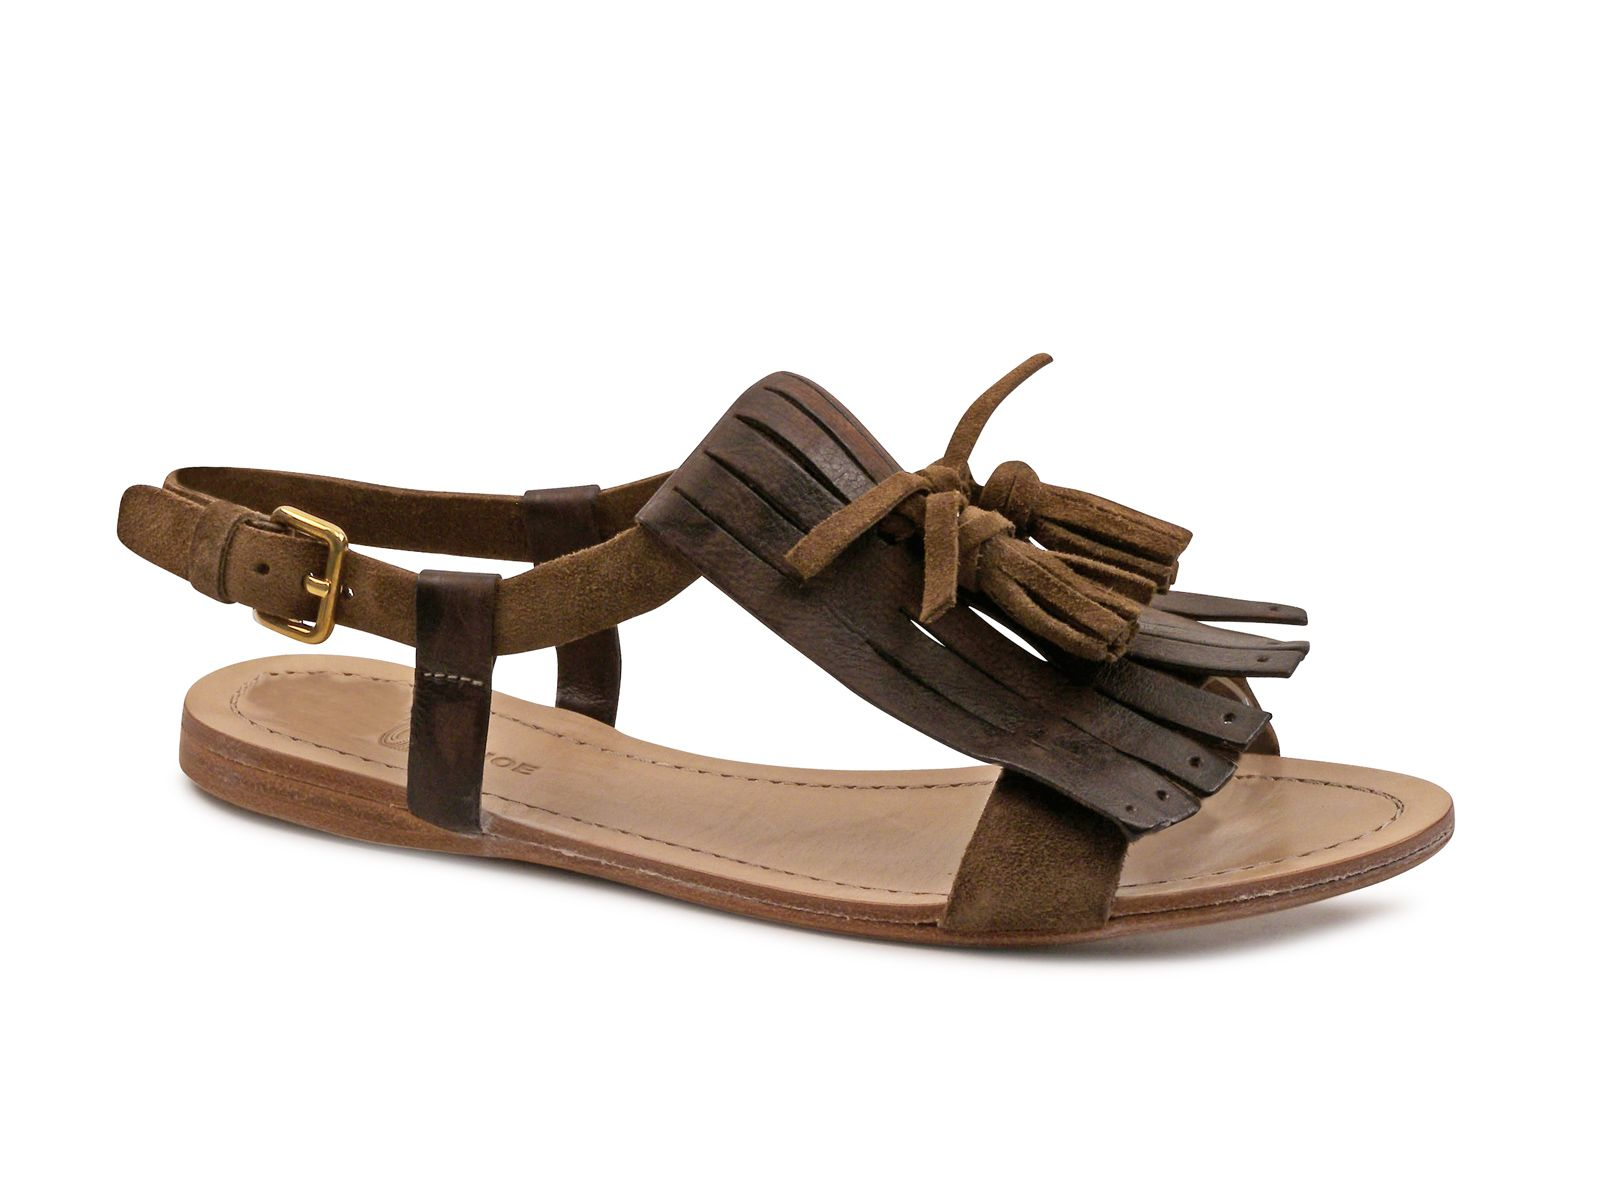 Car Shoe women brown Suede leather flat sandals shoes